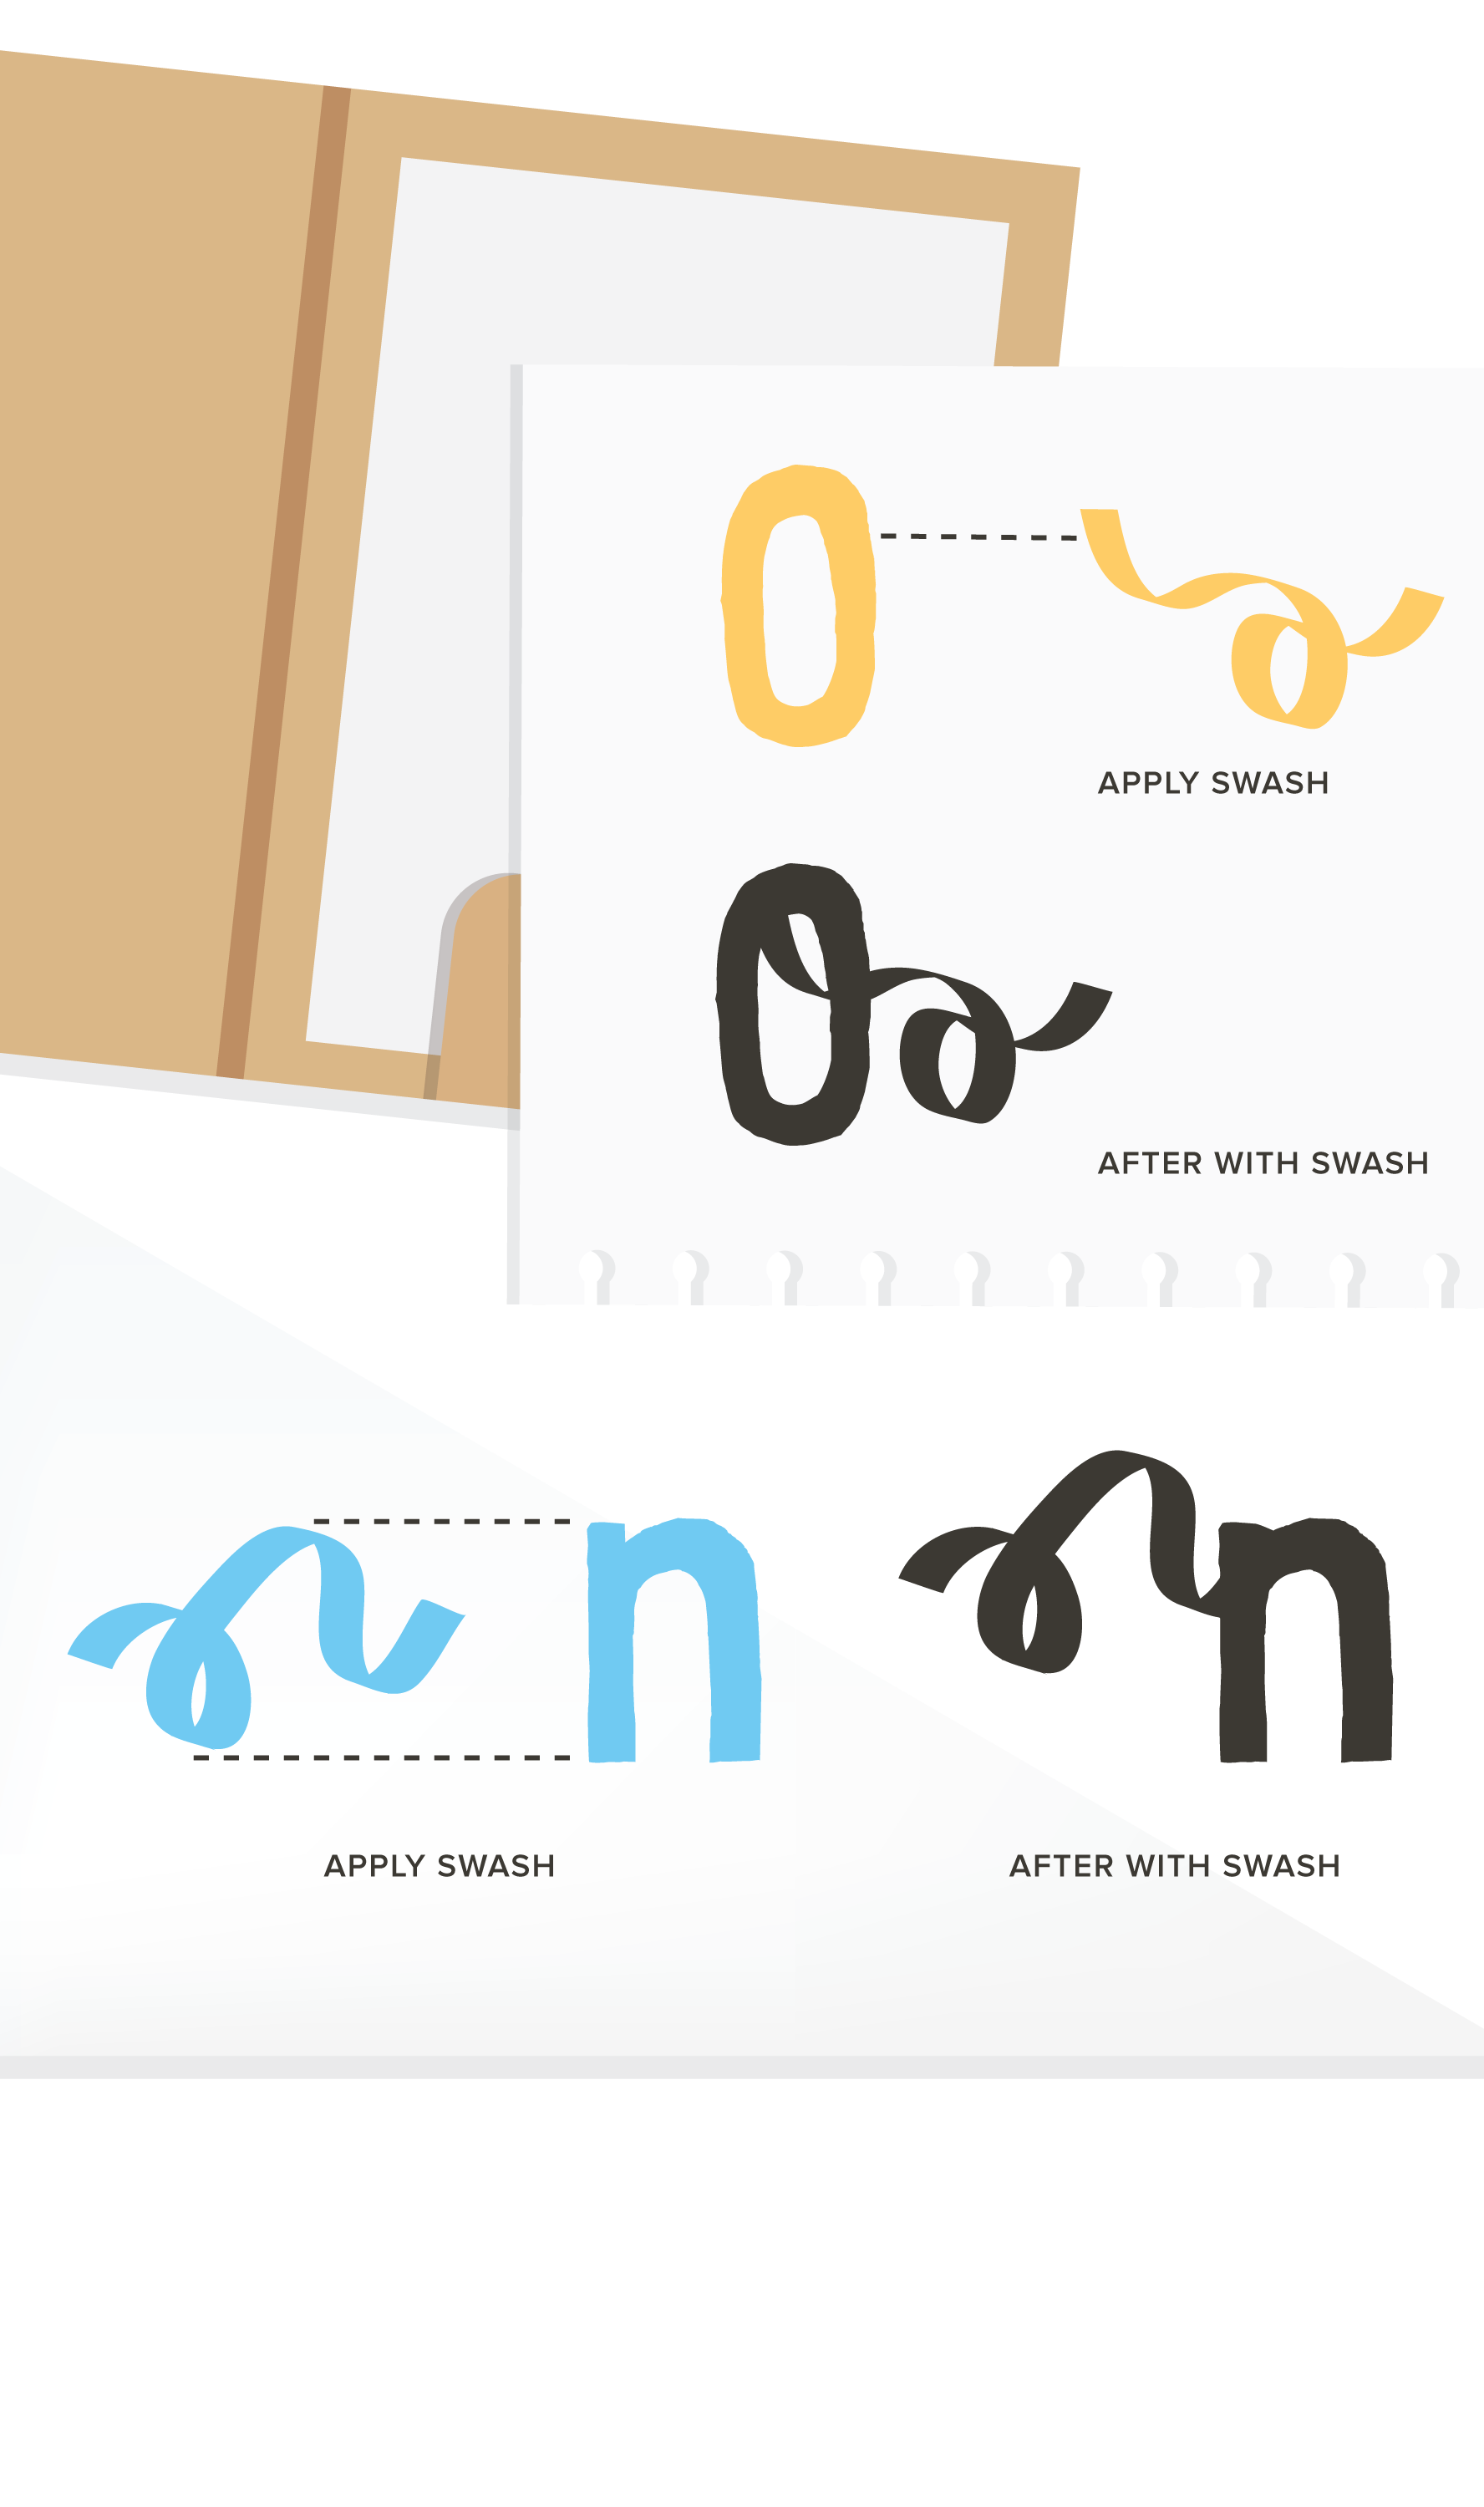 Swash vector illustrator. The collection on behance